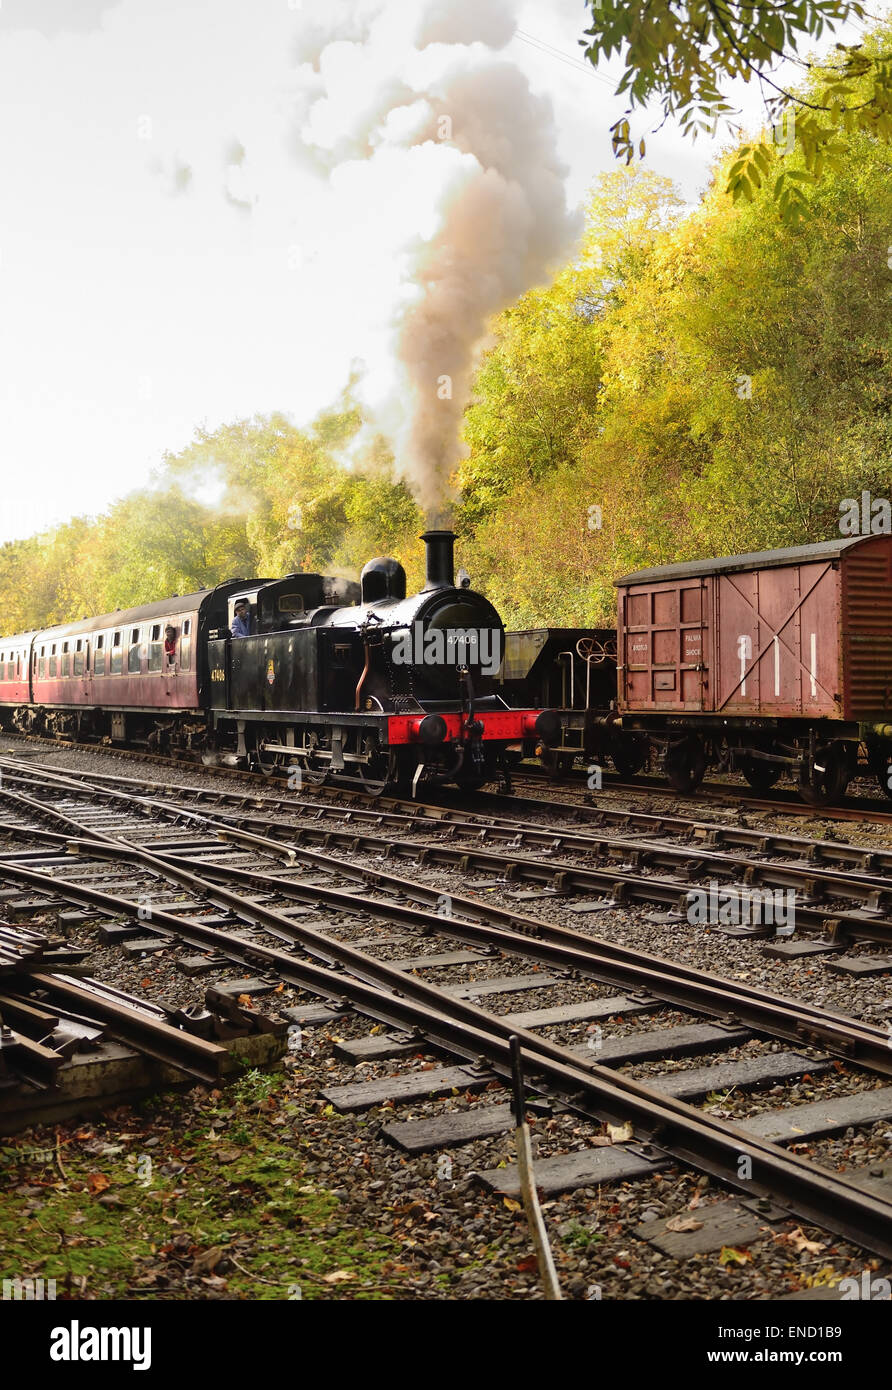 LMS Class 3F 0-6-0 tank engine No 47406 leaving Bitton station. - Stock Image